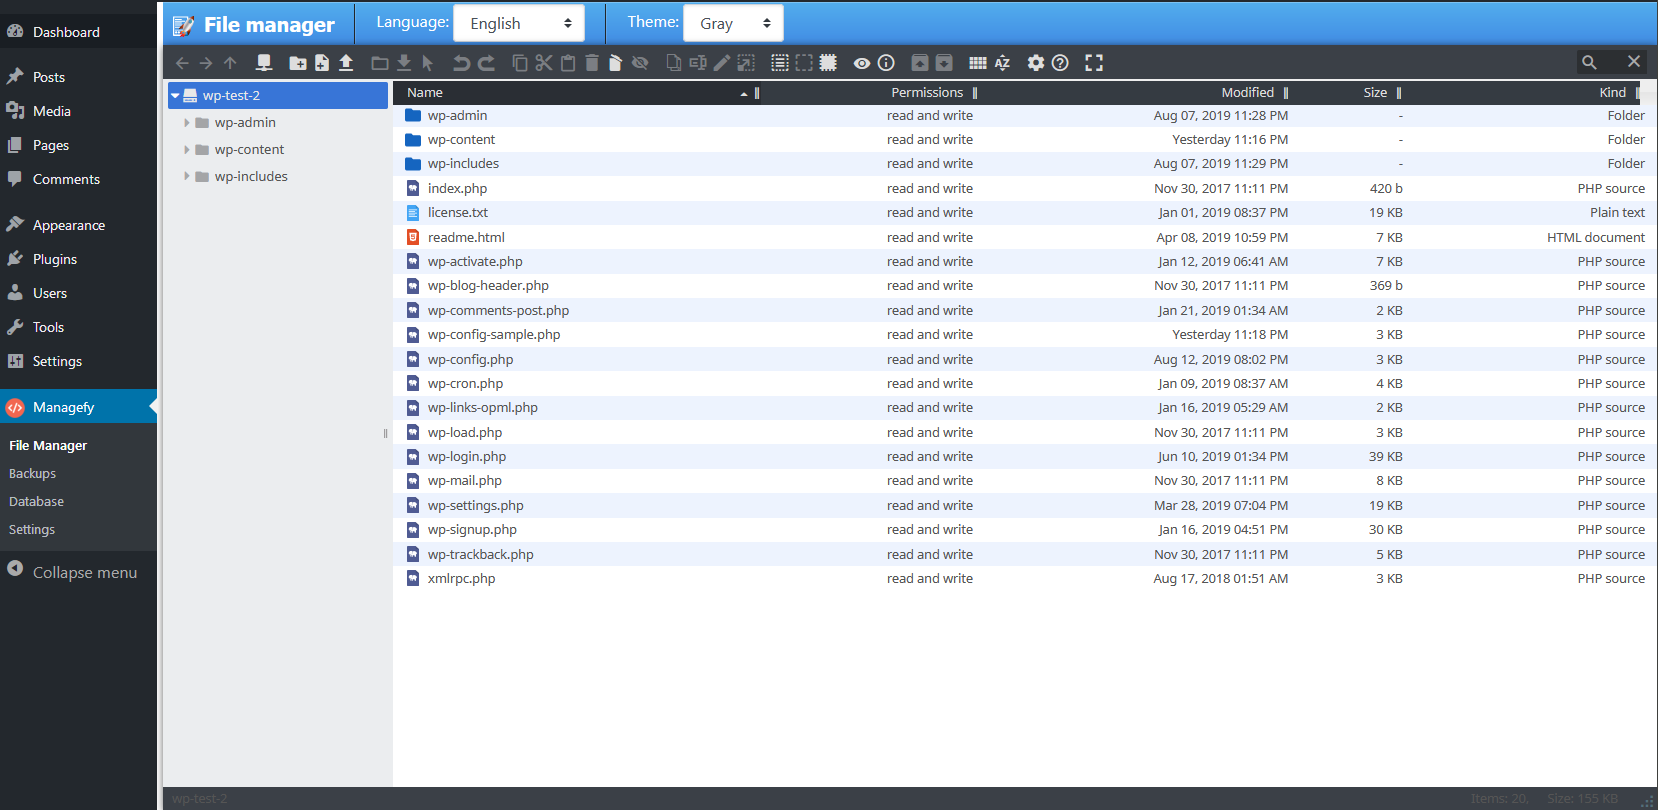 File manager panel